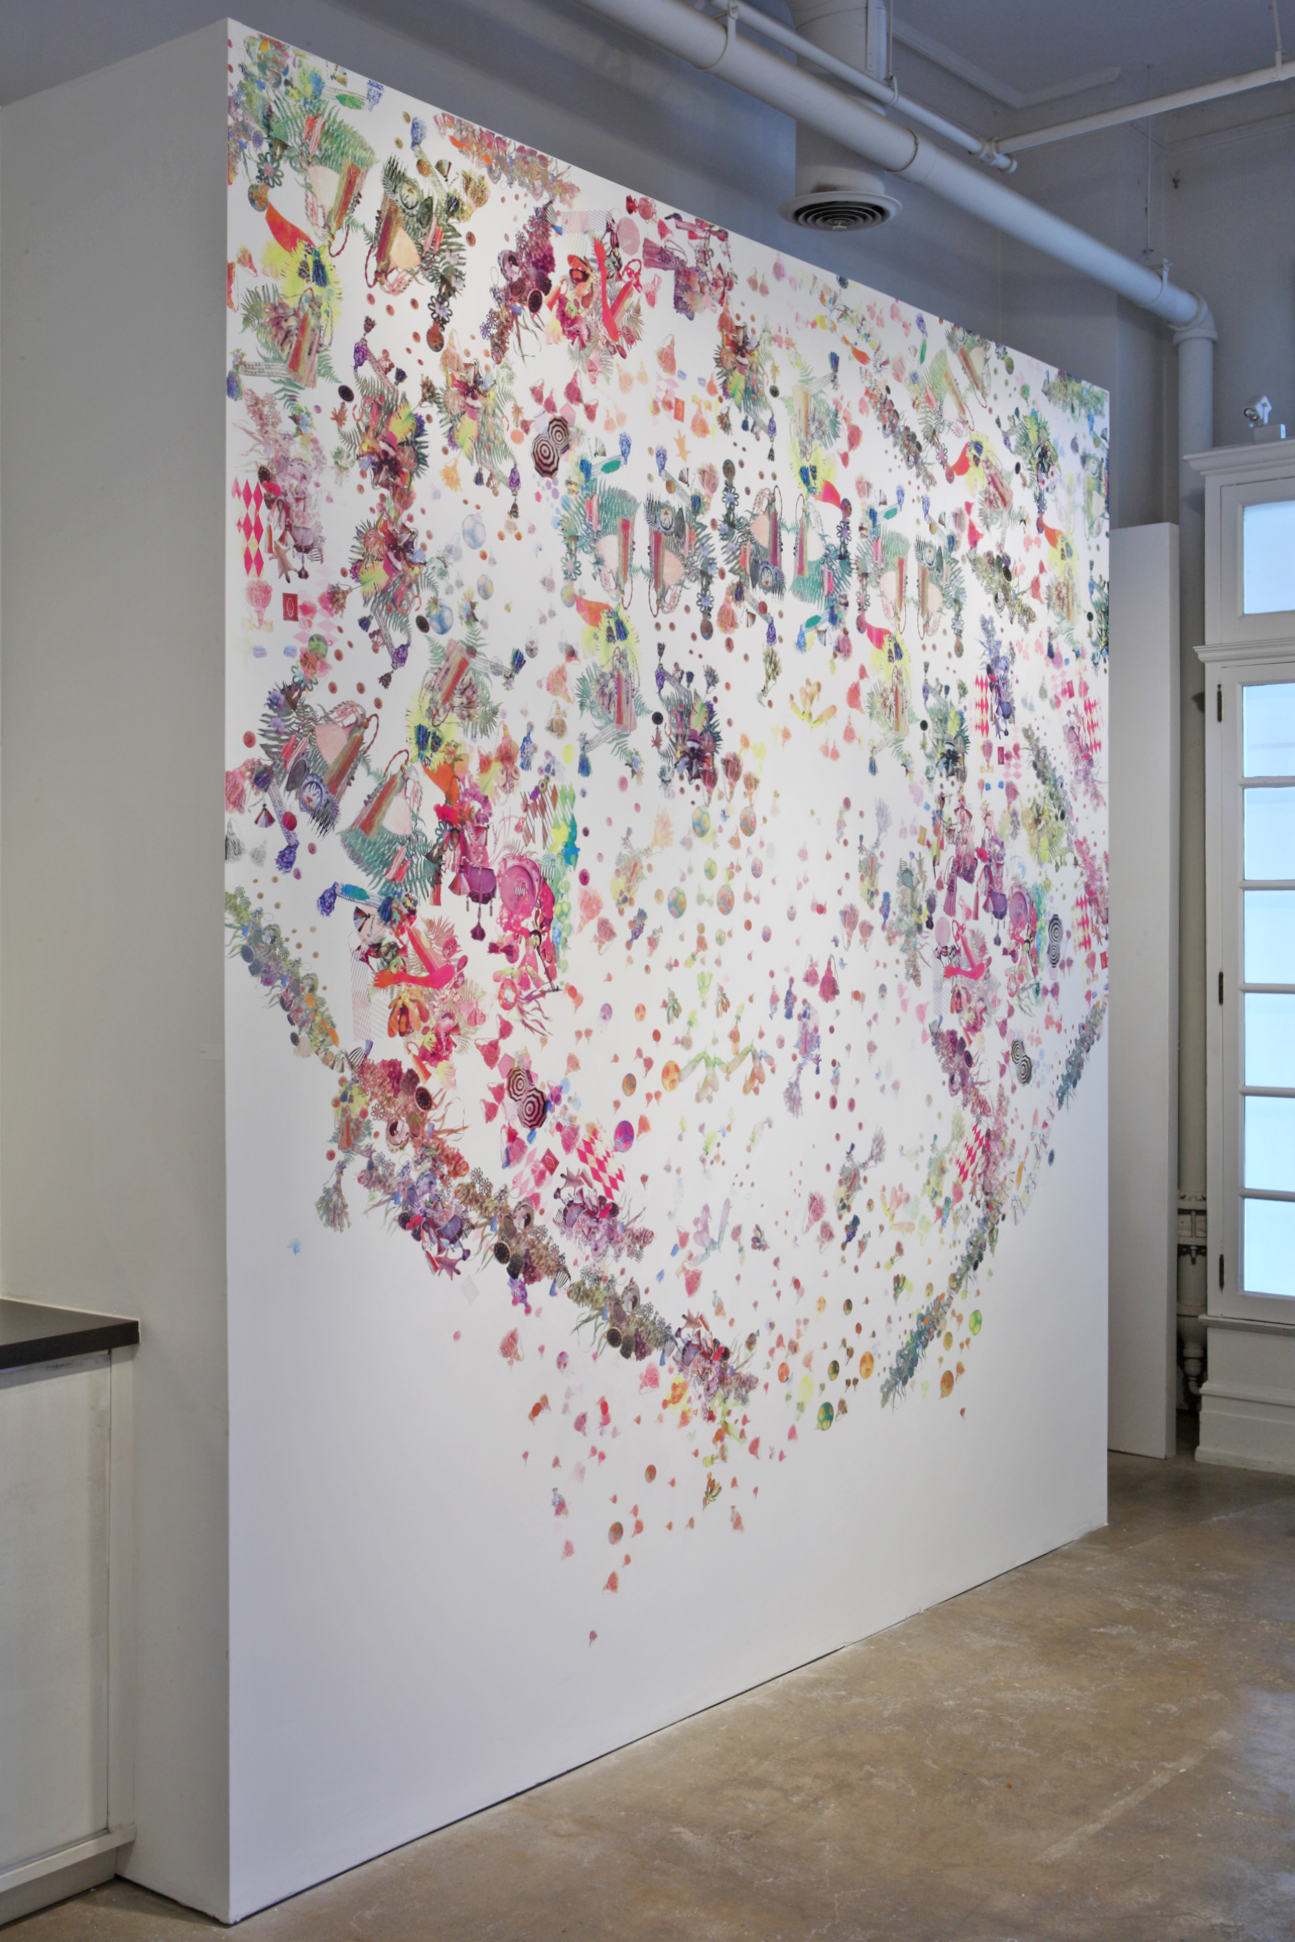 Embedded Threads. Installation at Gallery Joe, Philadelphia, PA. Screenprint on wall